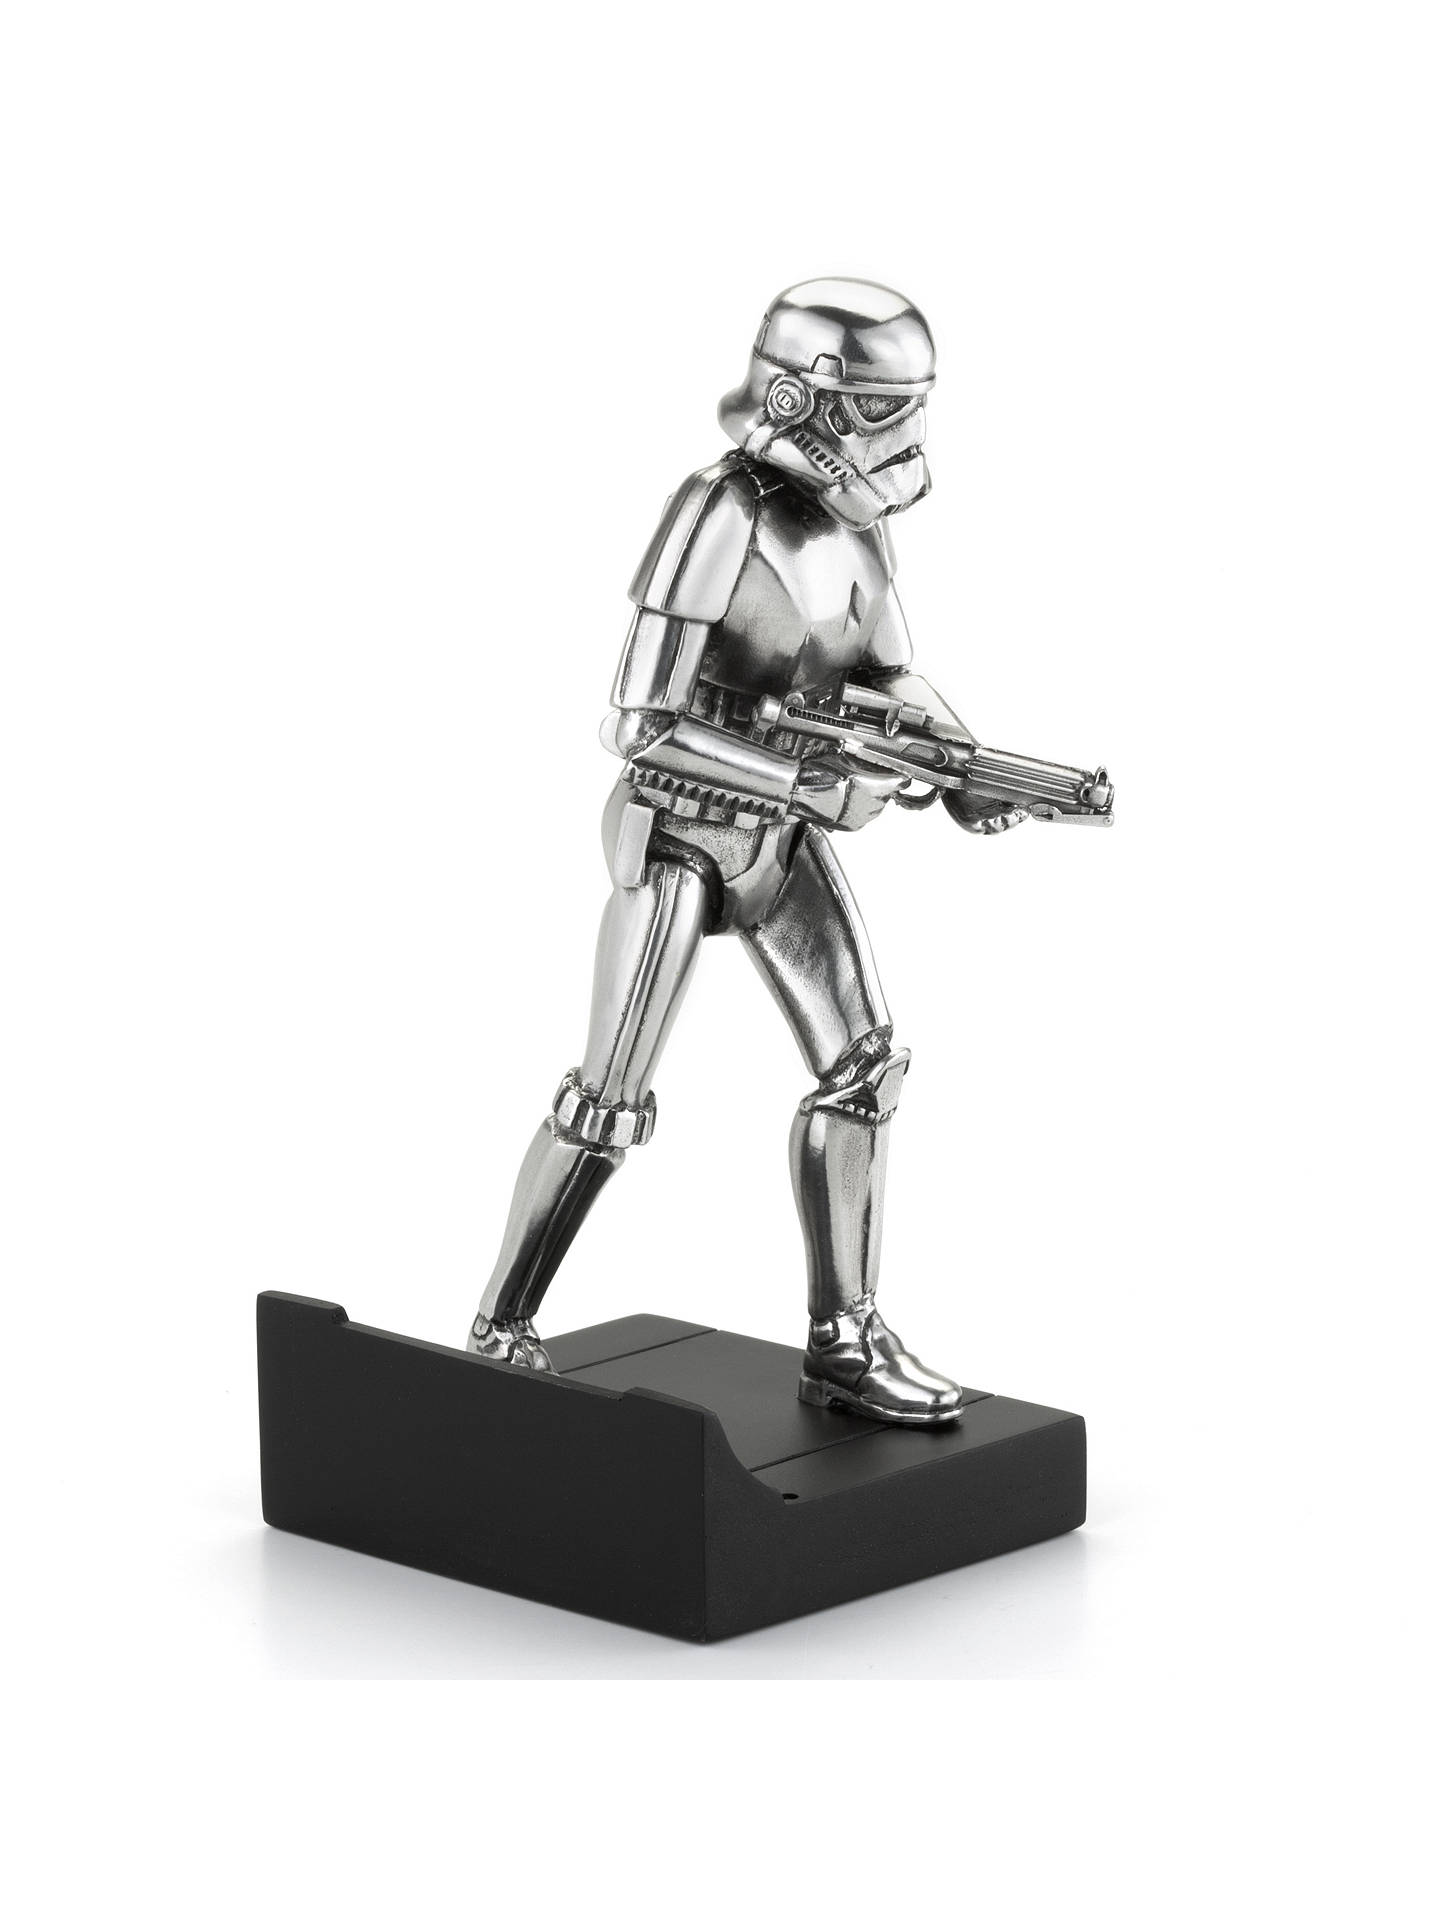 BuyRoyal Selangor Star Wars Stormtrooper Figurine Online at johnlewis.com